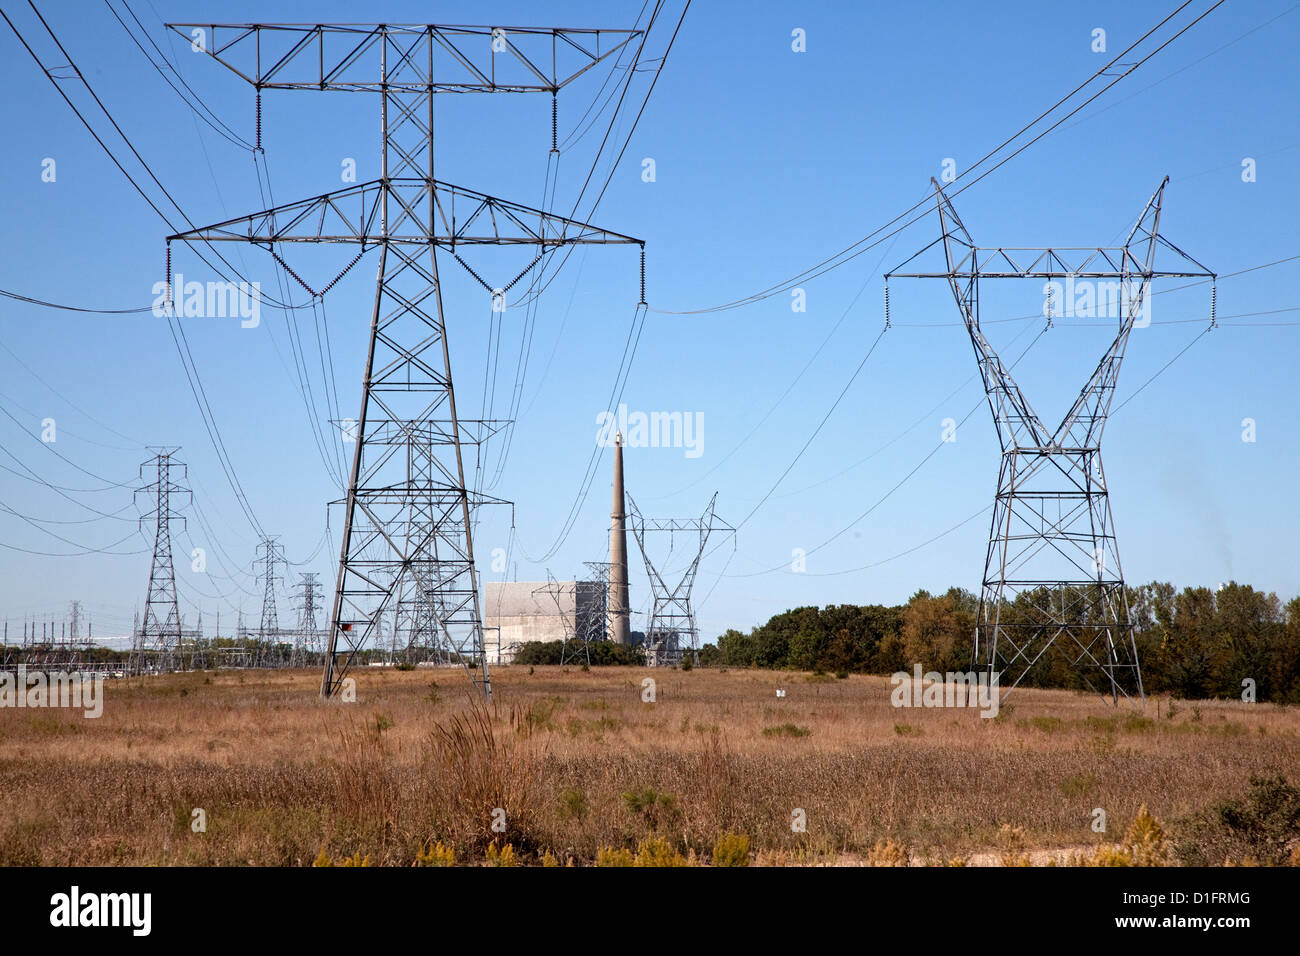 High voltage power lines transmitting electricity from the Monticello Nuclear Generating Plant. Monticello Minnesota - Stock Image